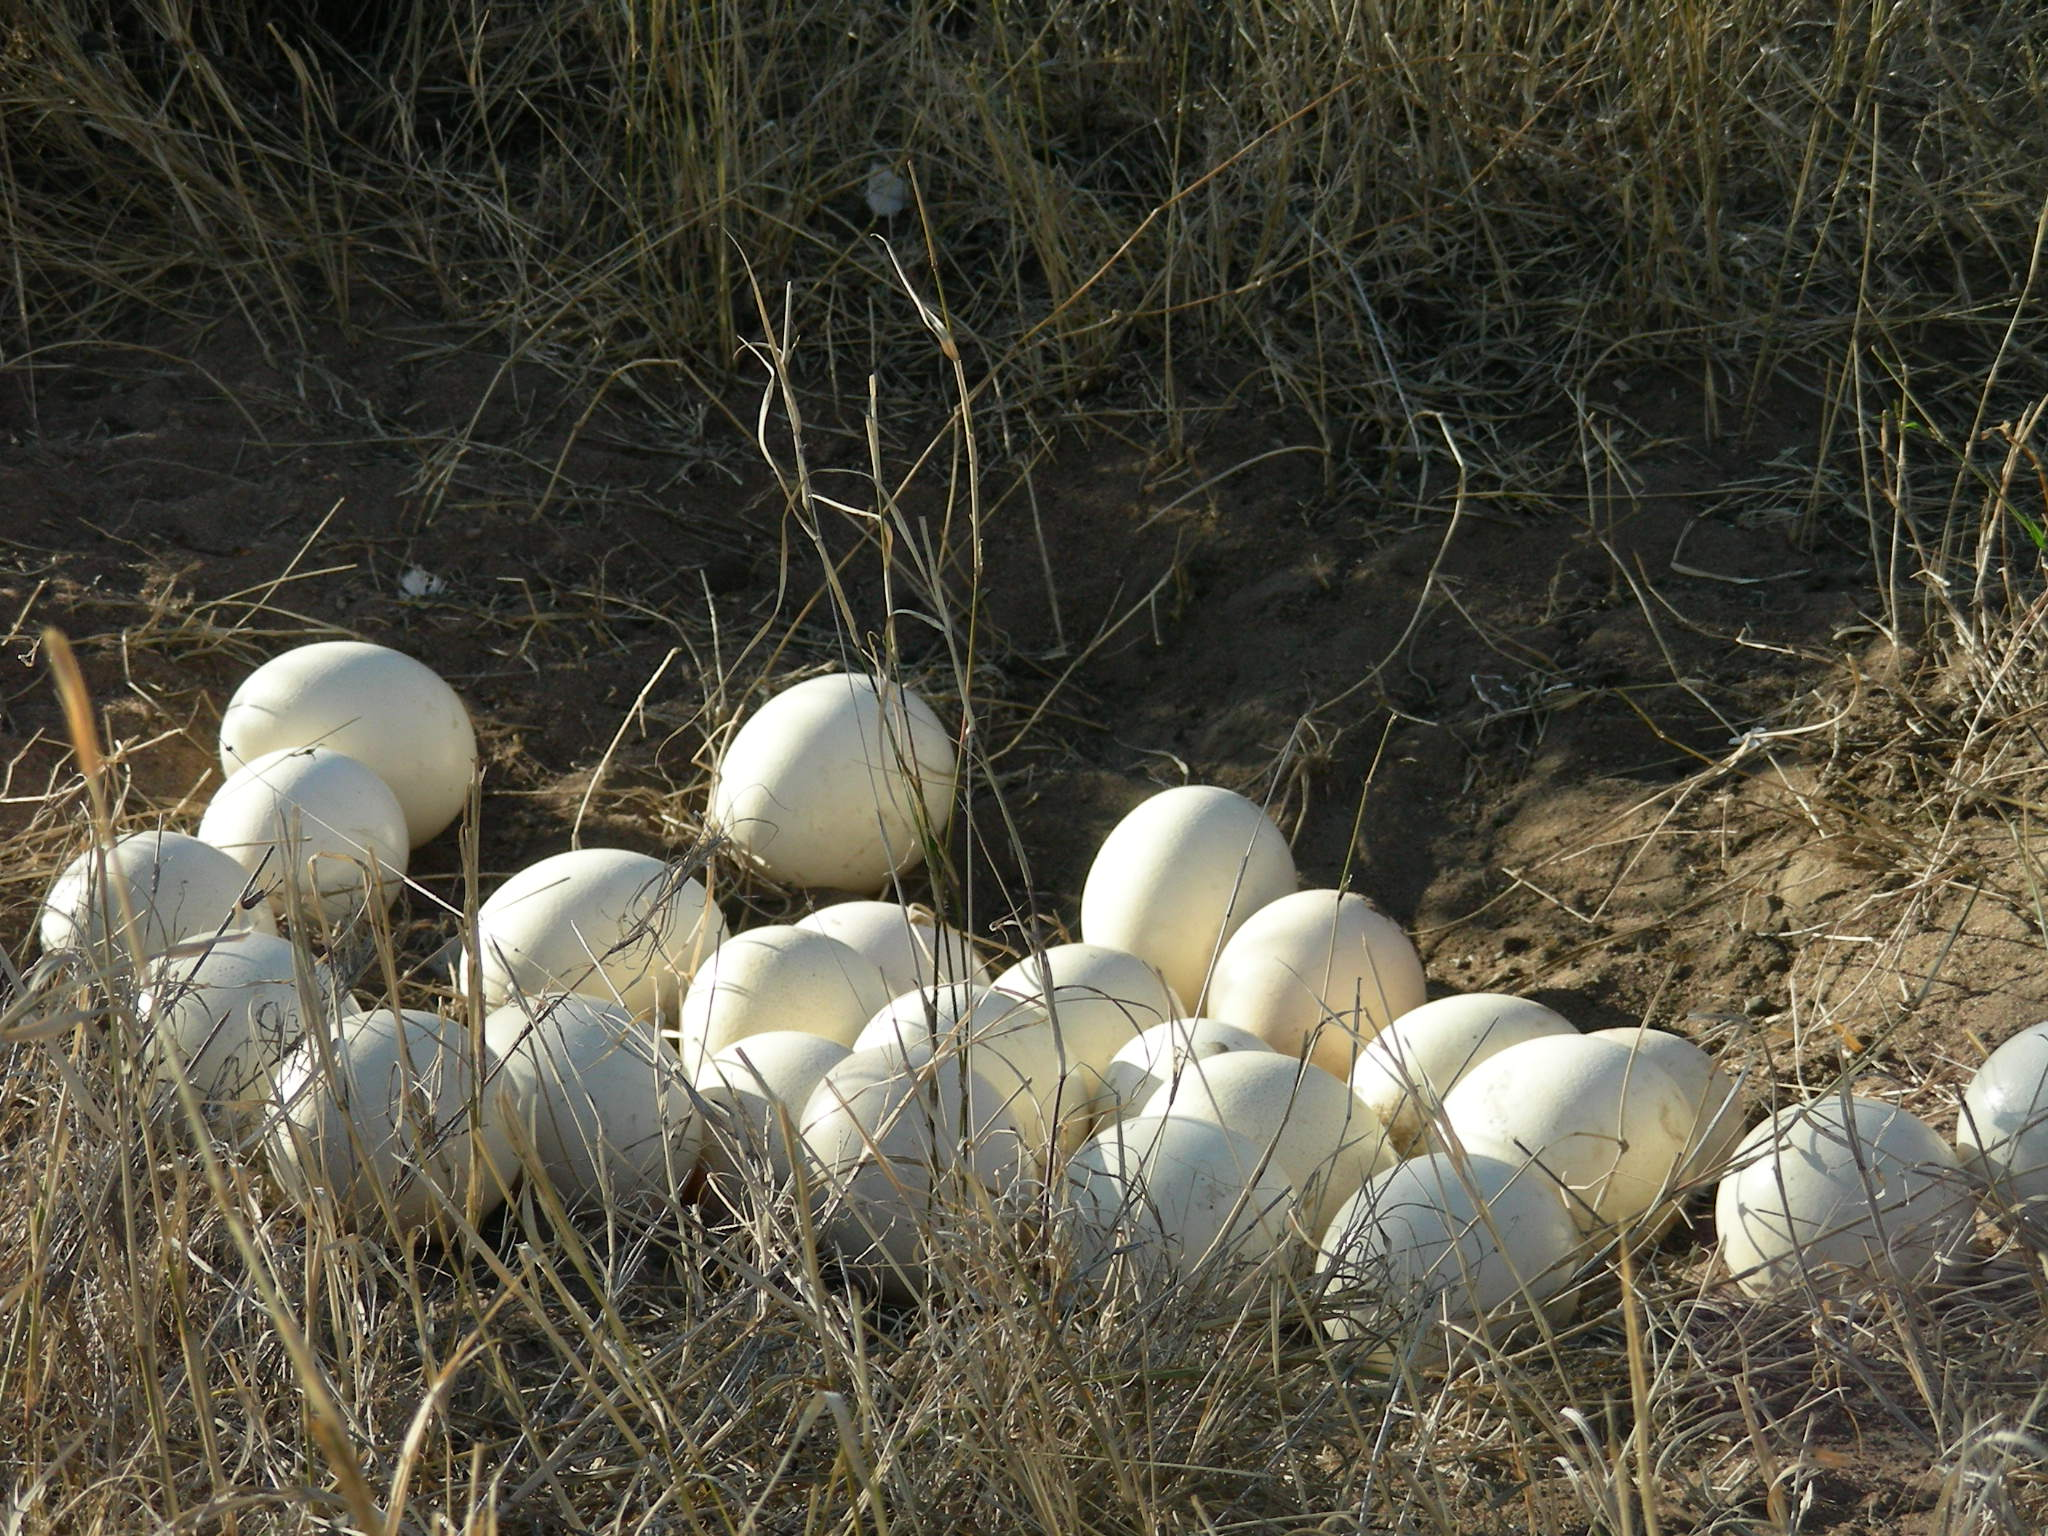 A discovery of Ostrich eggs